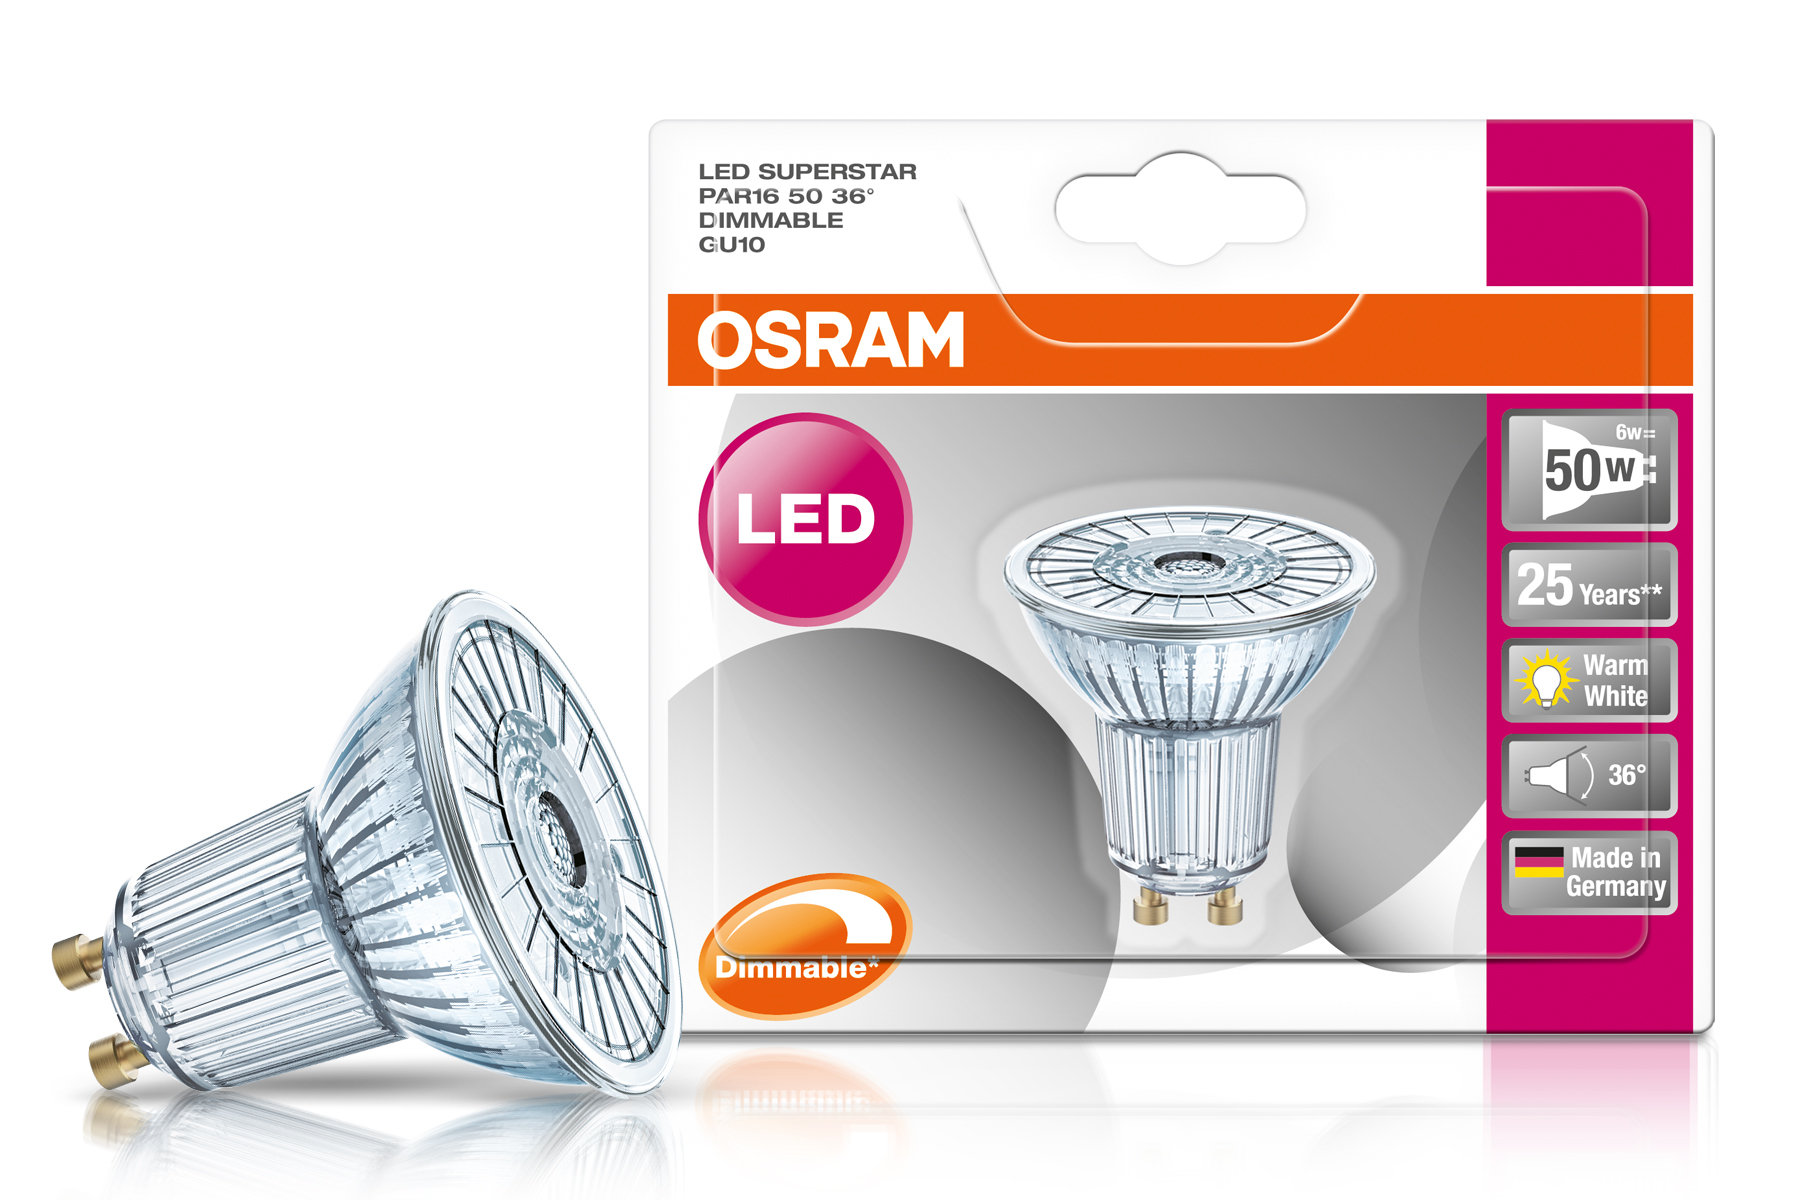 osram led superstar par16